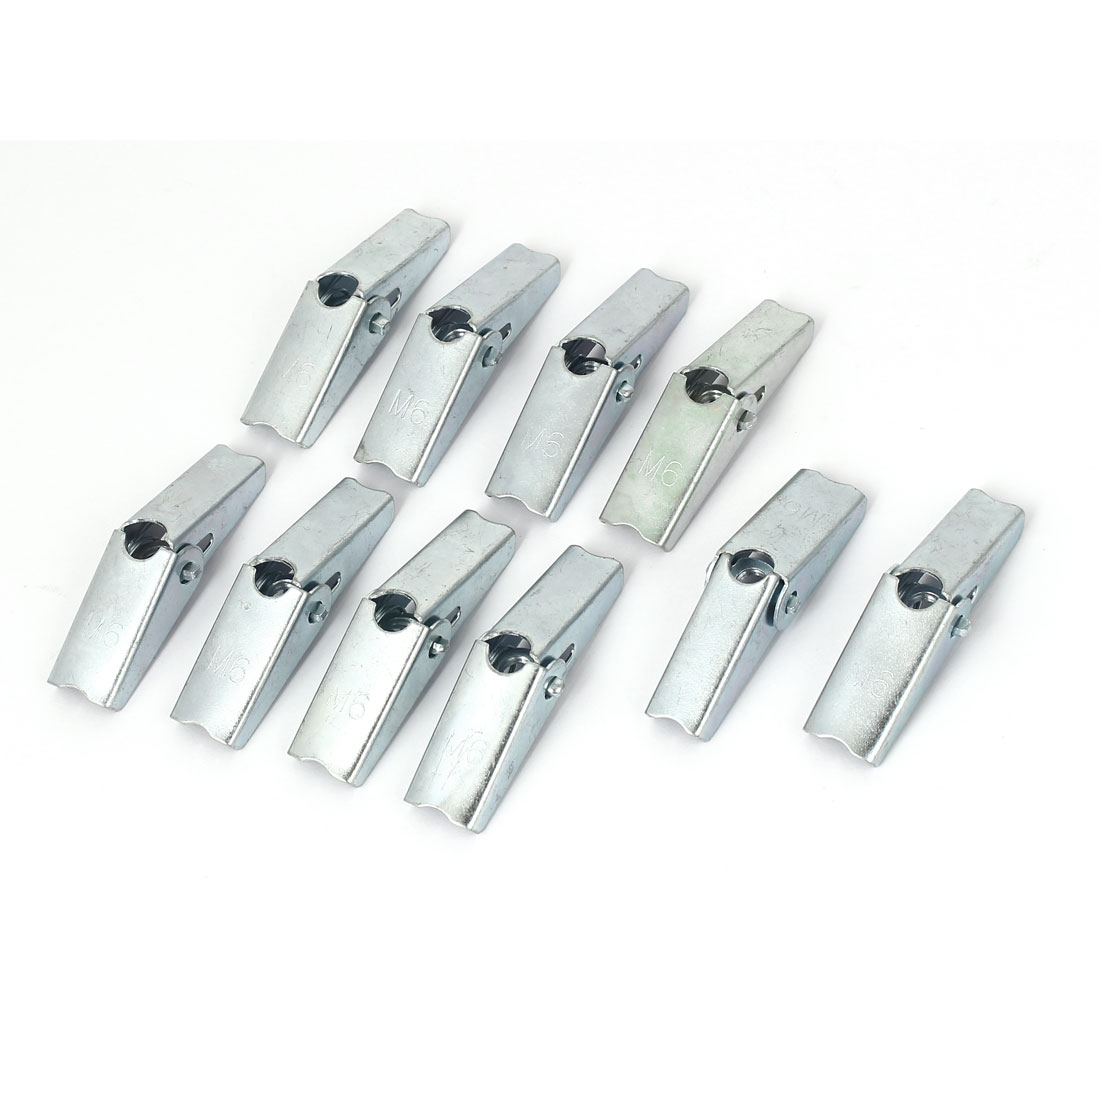 M6 Thread Metal Spring Loaded Hollow Wall Anchor Wing Nuts Silver Tone 10 Pcs